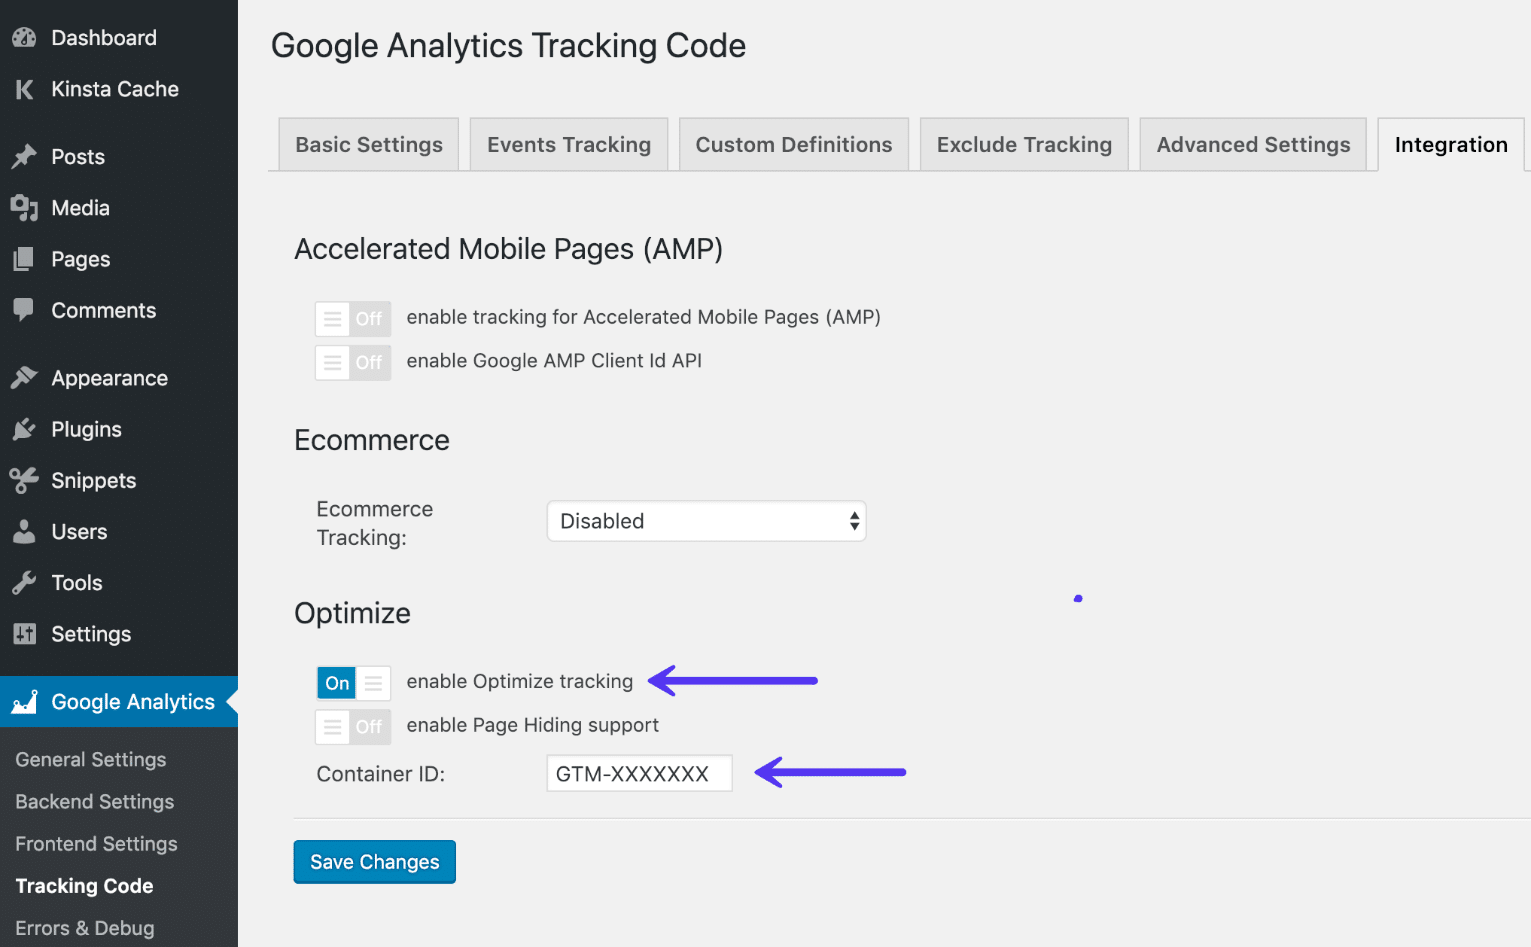 Habilitando el plugin de Google Optimize in Analytics